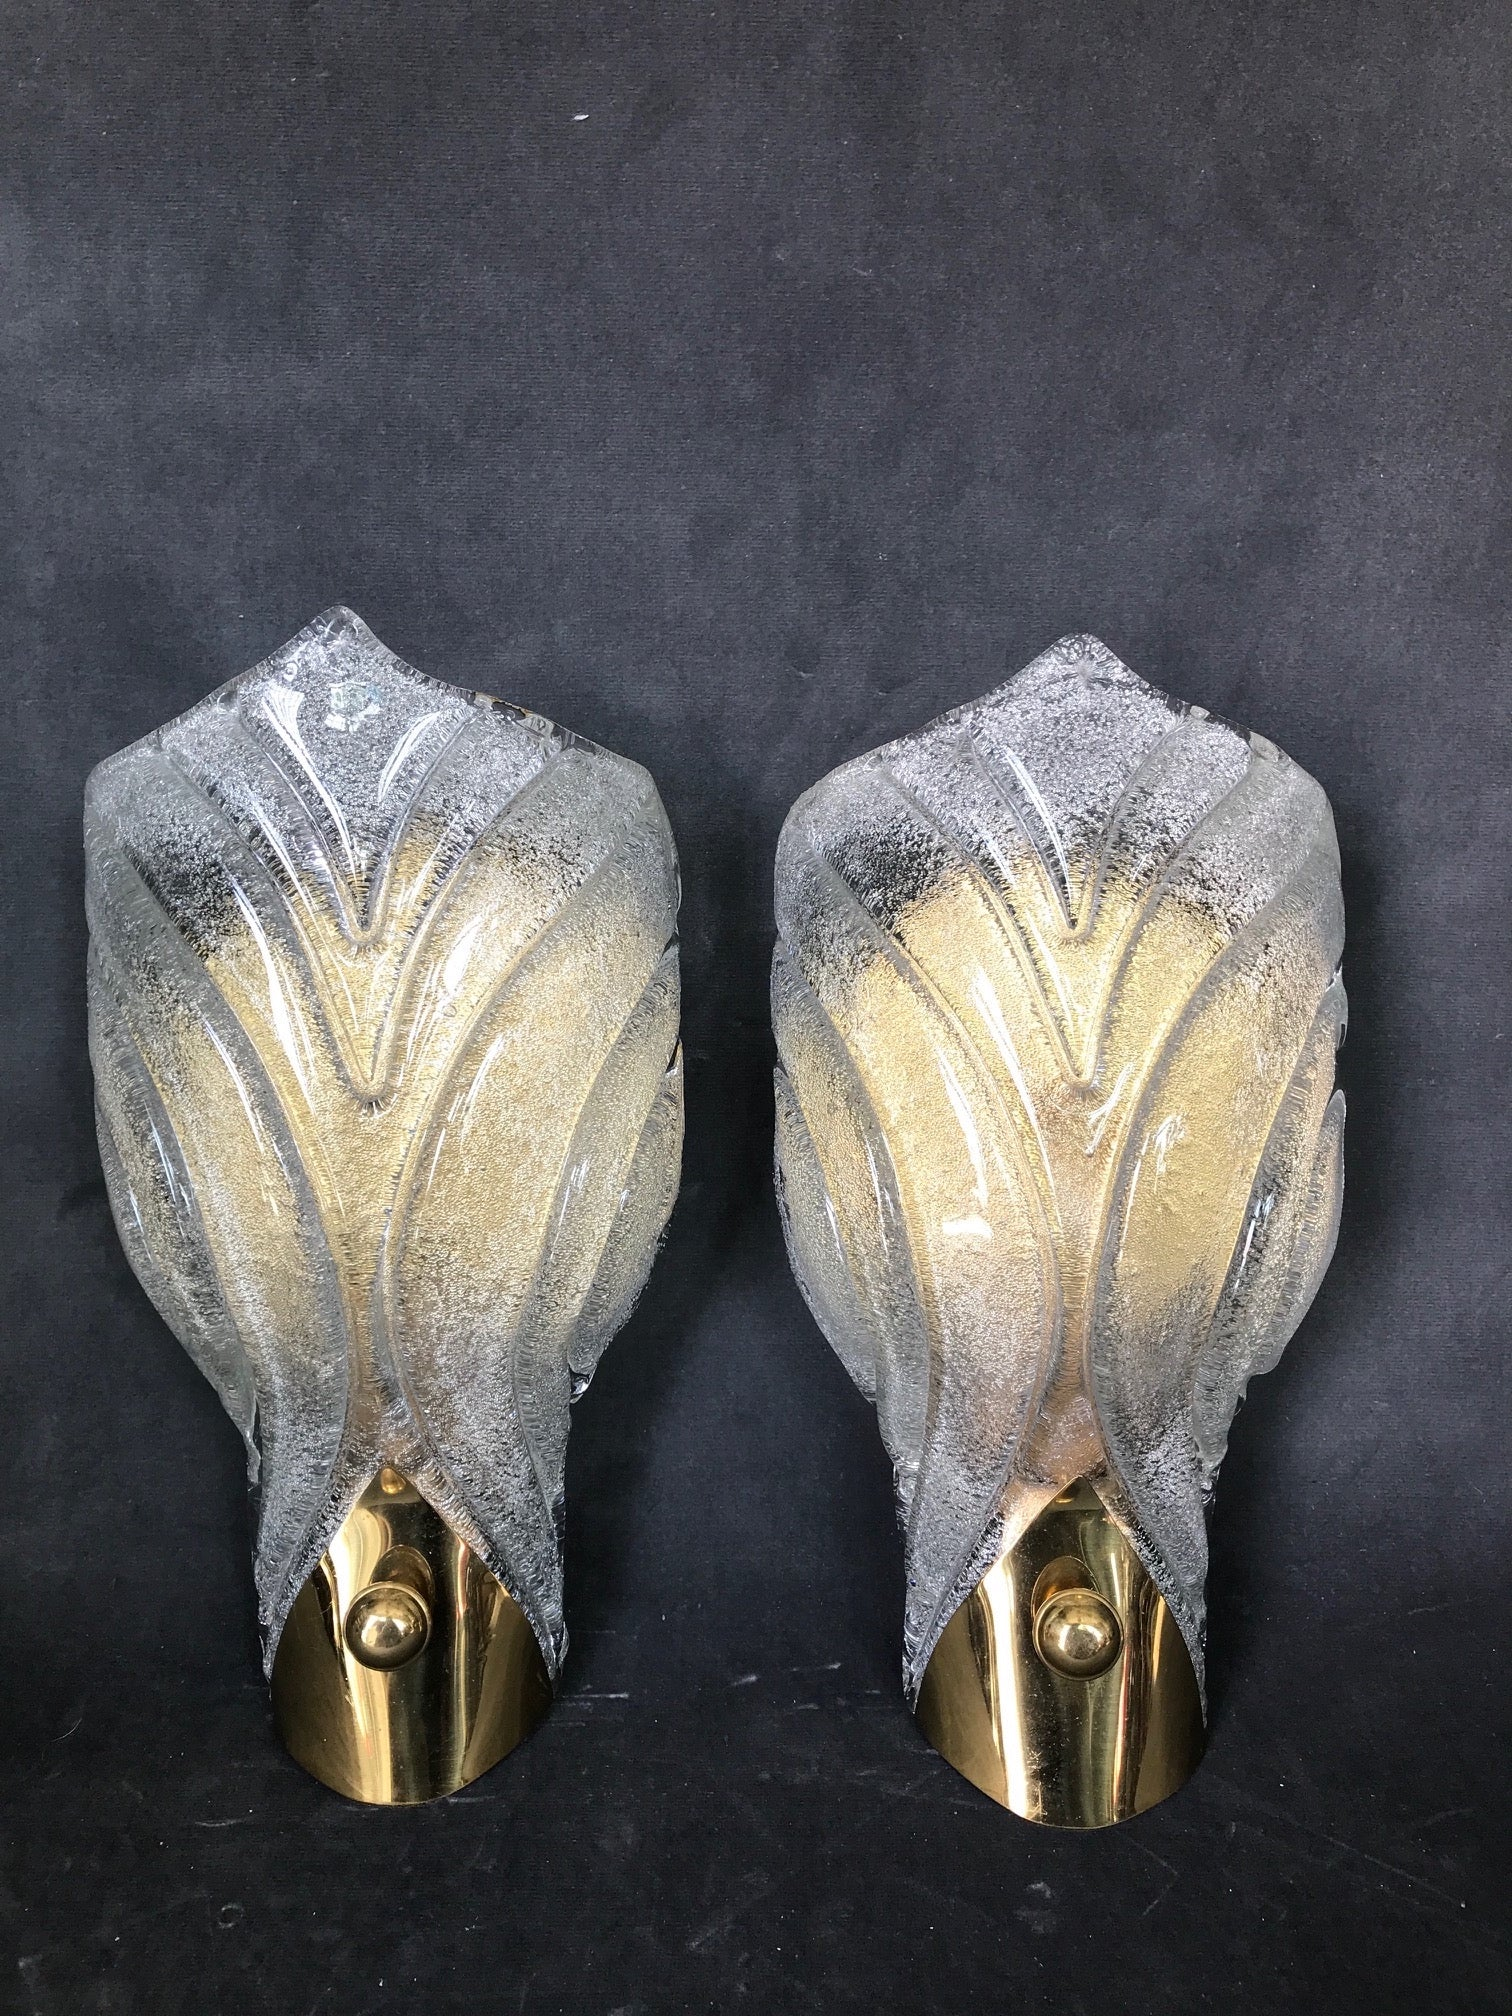 Pair of 1970's Murano Glass Wall Lights in Art Deco Style .